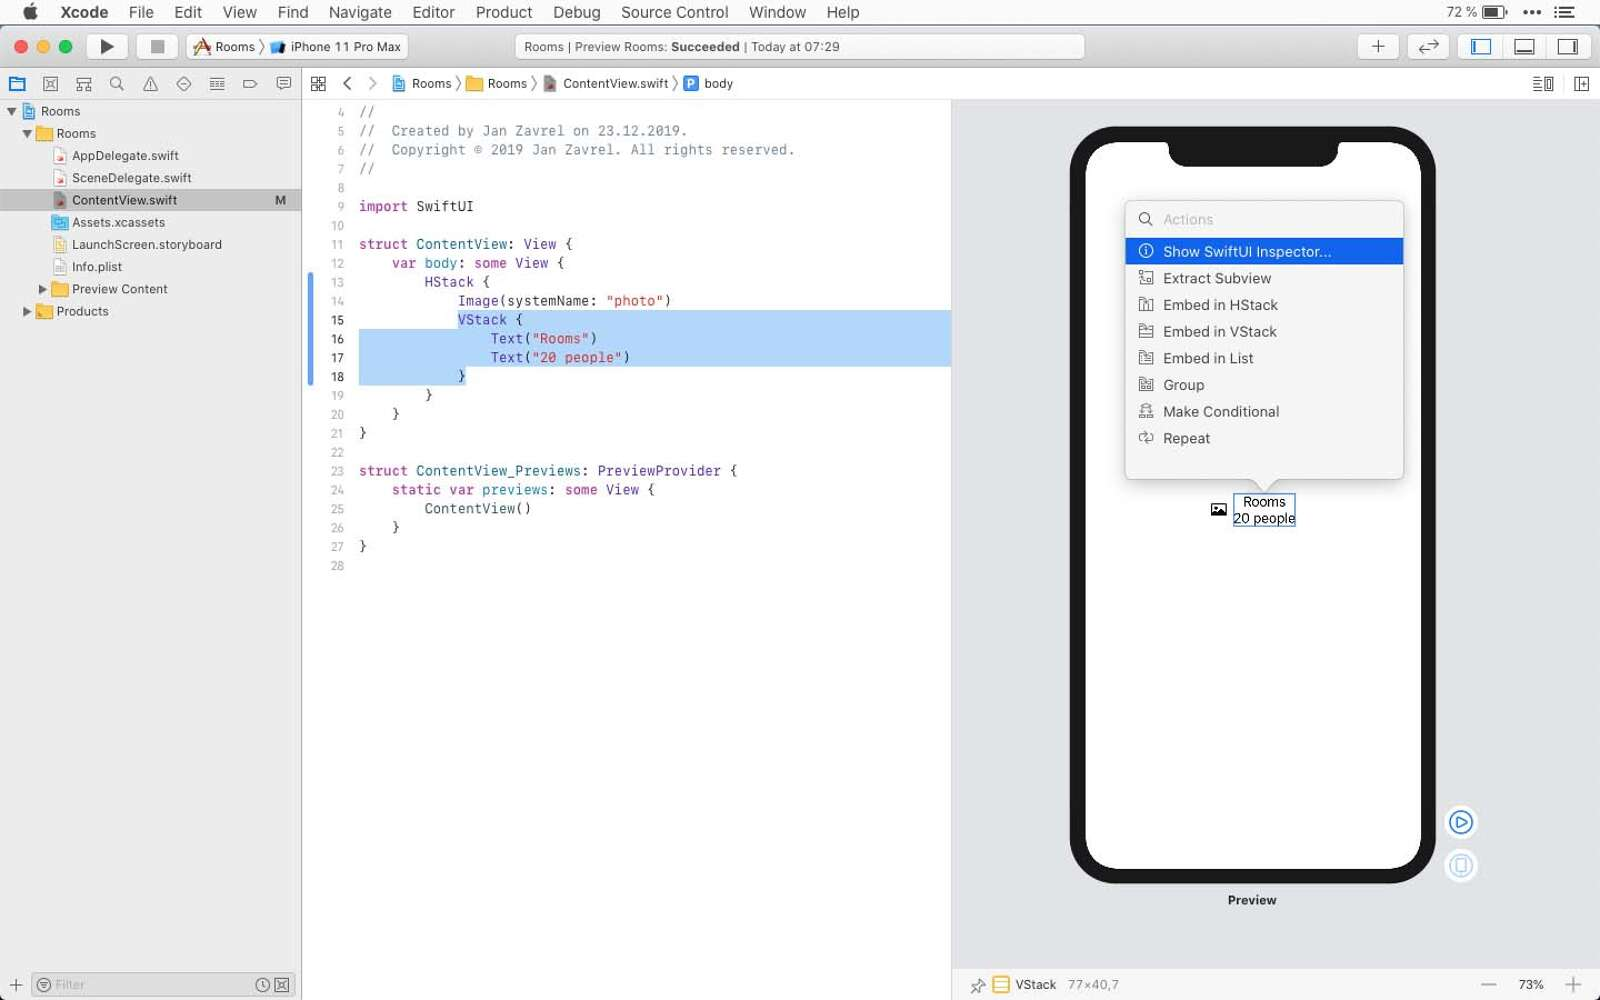 https://res.cloudinary.com/codewithjan/image/upload/v1578422343/swiftui-by-examples/swiftui-by-examples-19.jpg